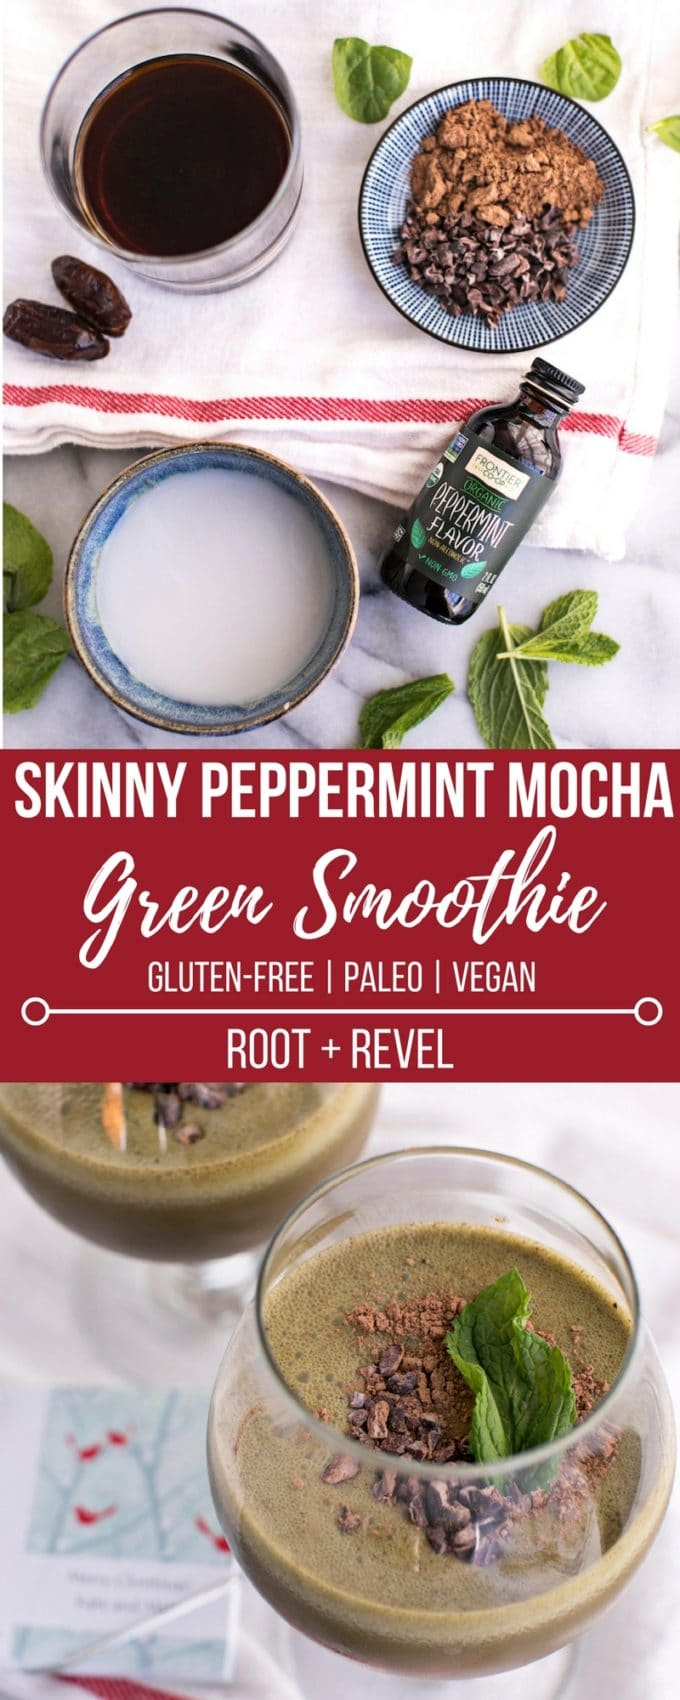 This homemade skinny peppermint mocha green smoothie recipe is a healthy copycat version of the iconic Starbucks drink, made without any of the harmful additives and excess sugar. It's full of classic mint chocolate, creamy coffee flavor, plus tons of vitamins and nutrients to nourish your body through the season.